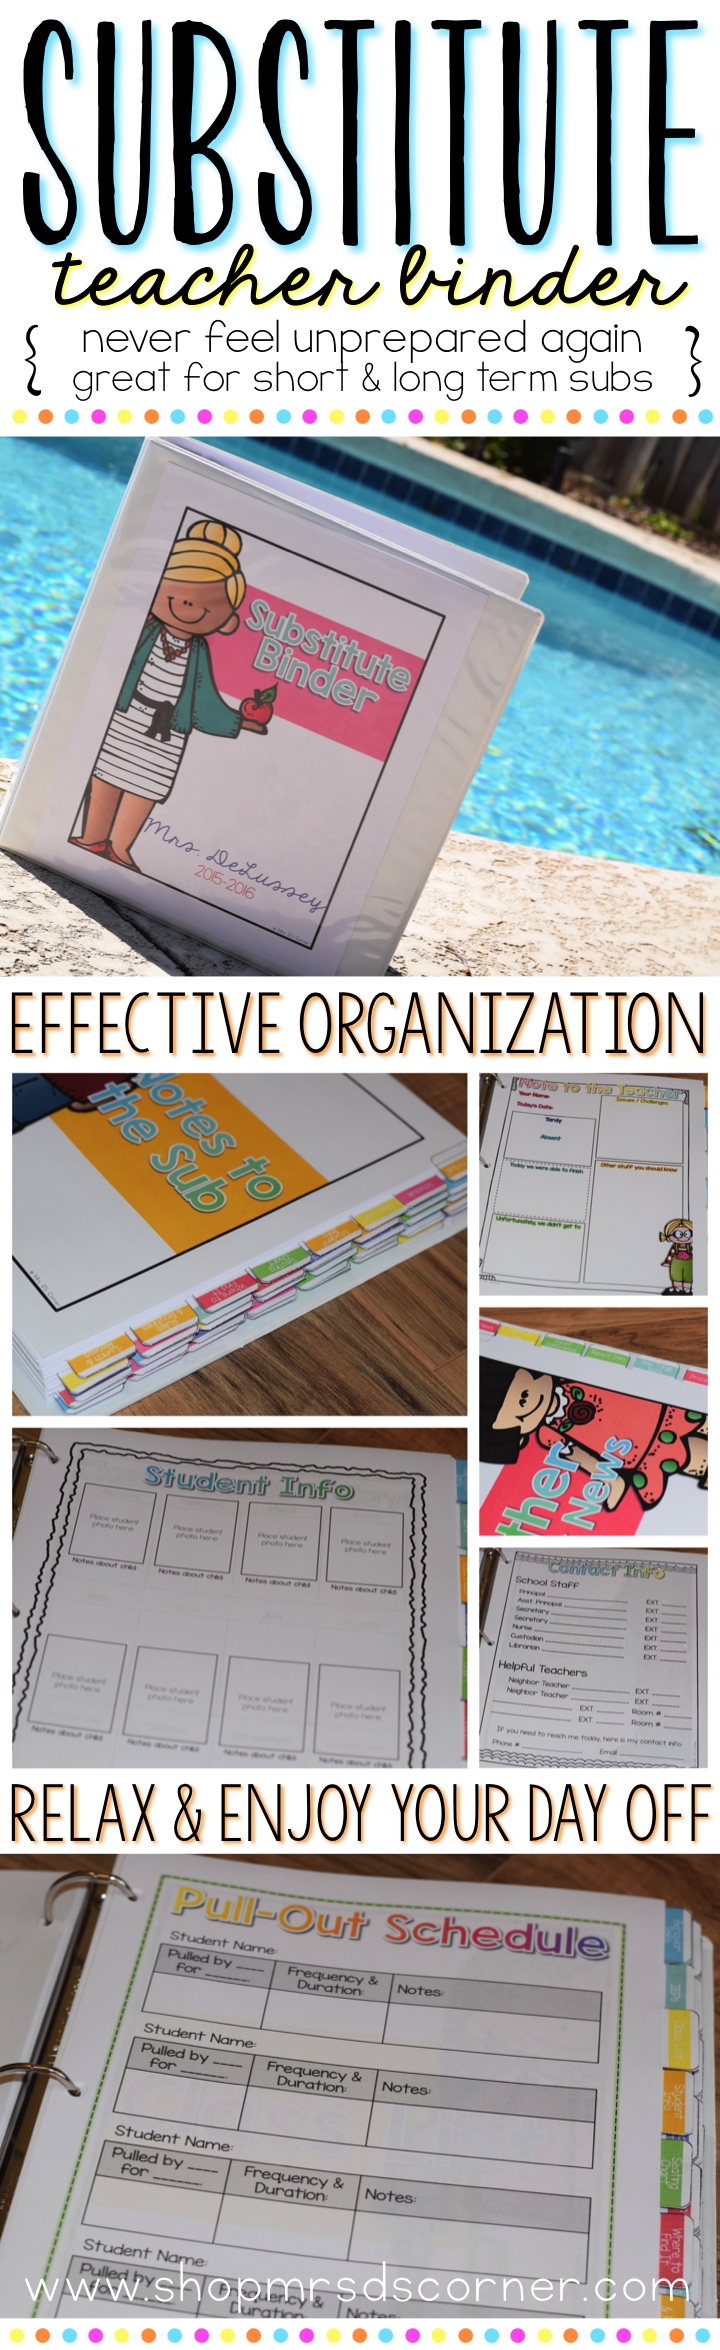 Substitute Binder EDITABLE { for Short and Long Term Subs } Melonheadz #planningyourday